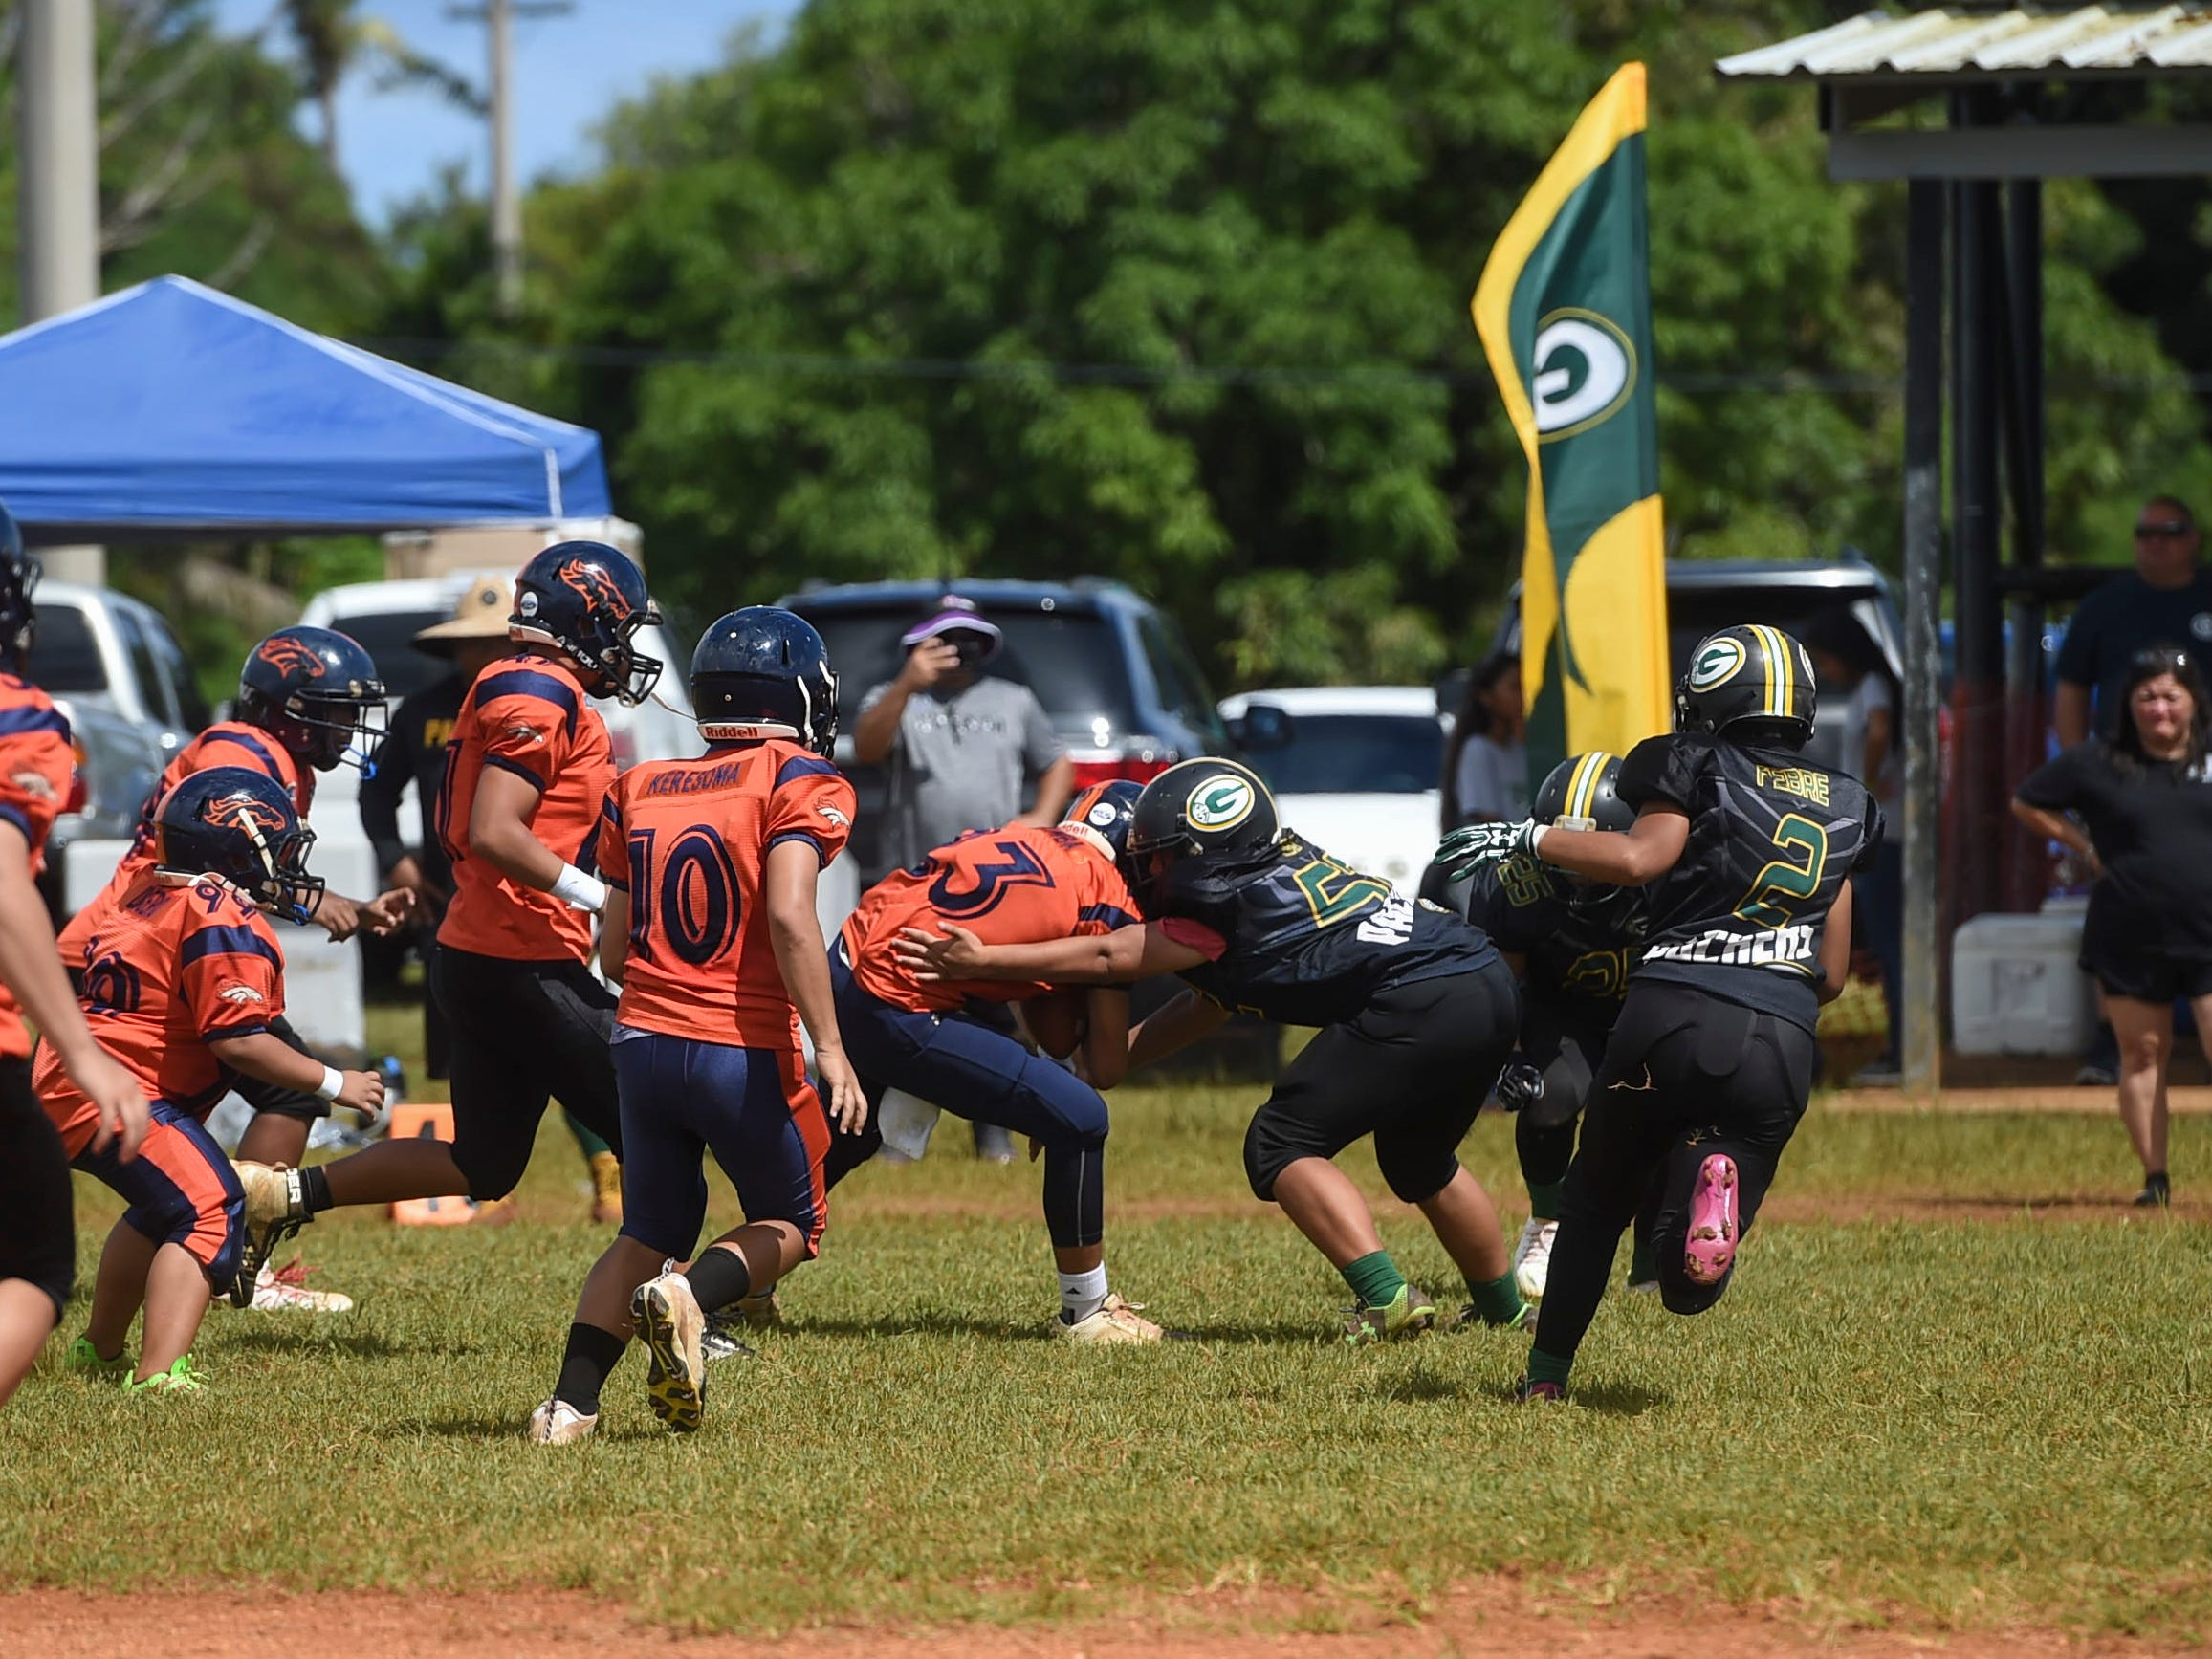 Cinnabon Island Broncos and Guam Packers players collide during their Guam National Youth Football Federation Matua division game at the Mikkel Tan I. Vy Field in Tiyan on Sept. 2, 2018.